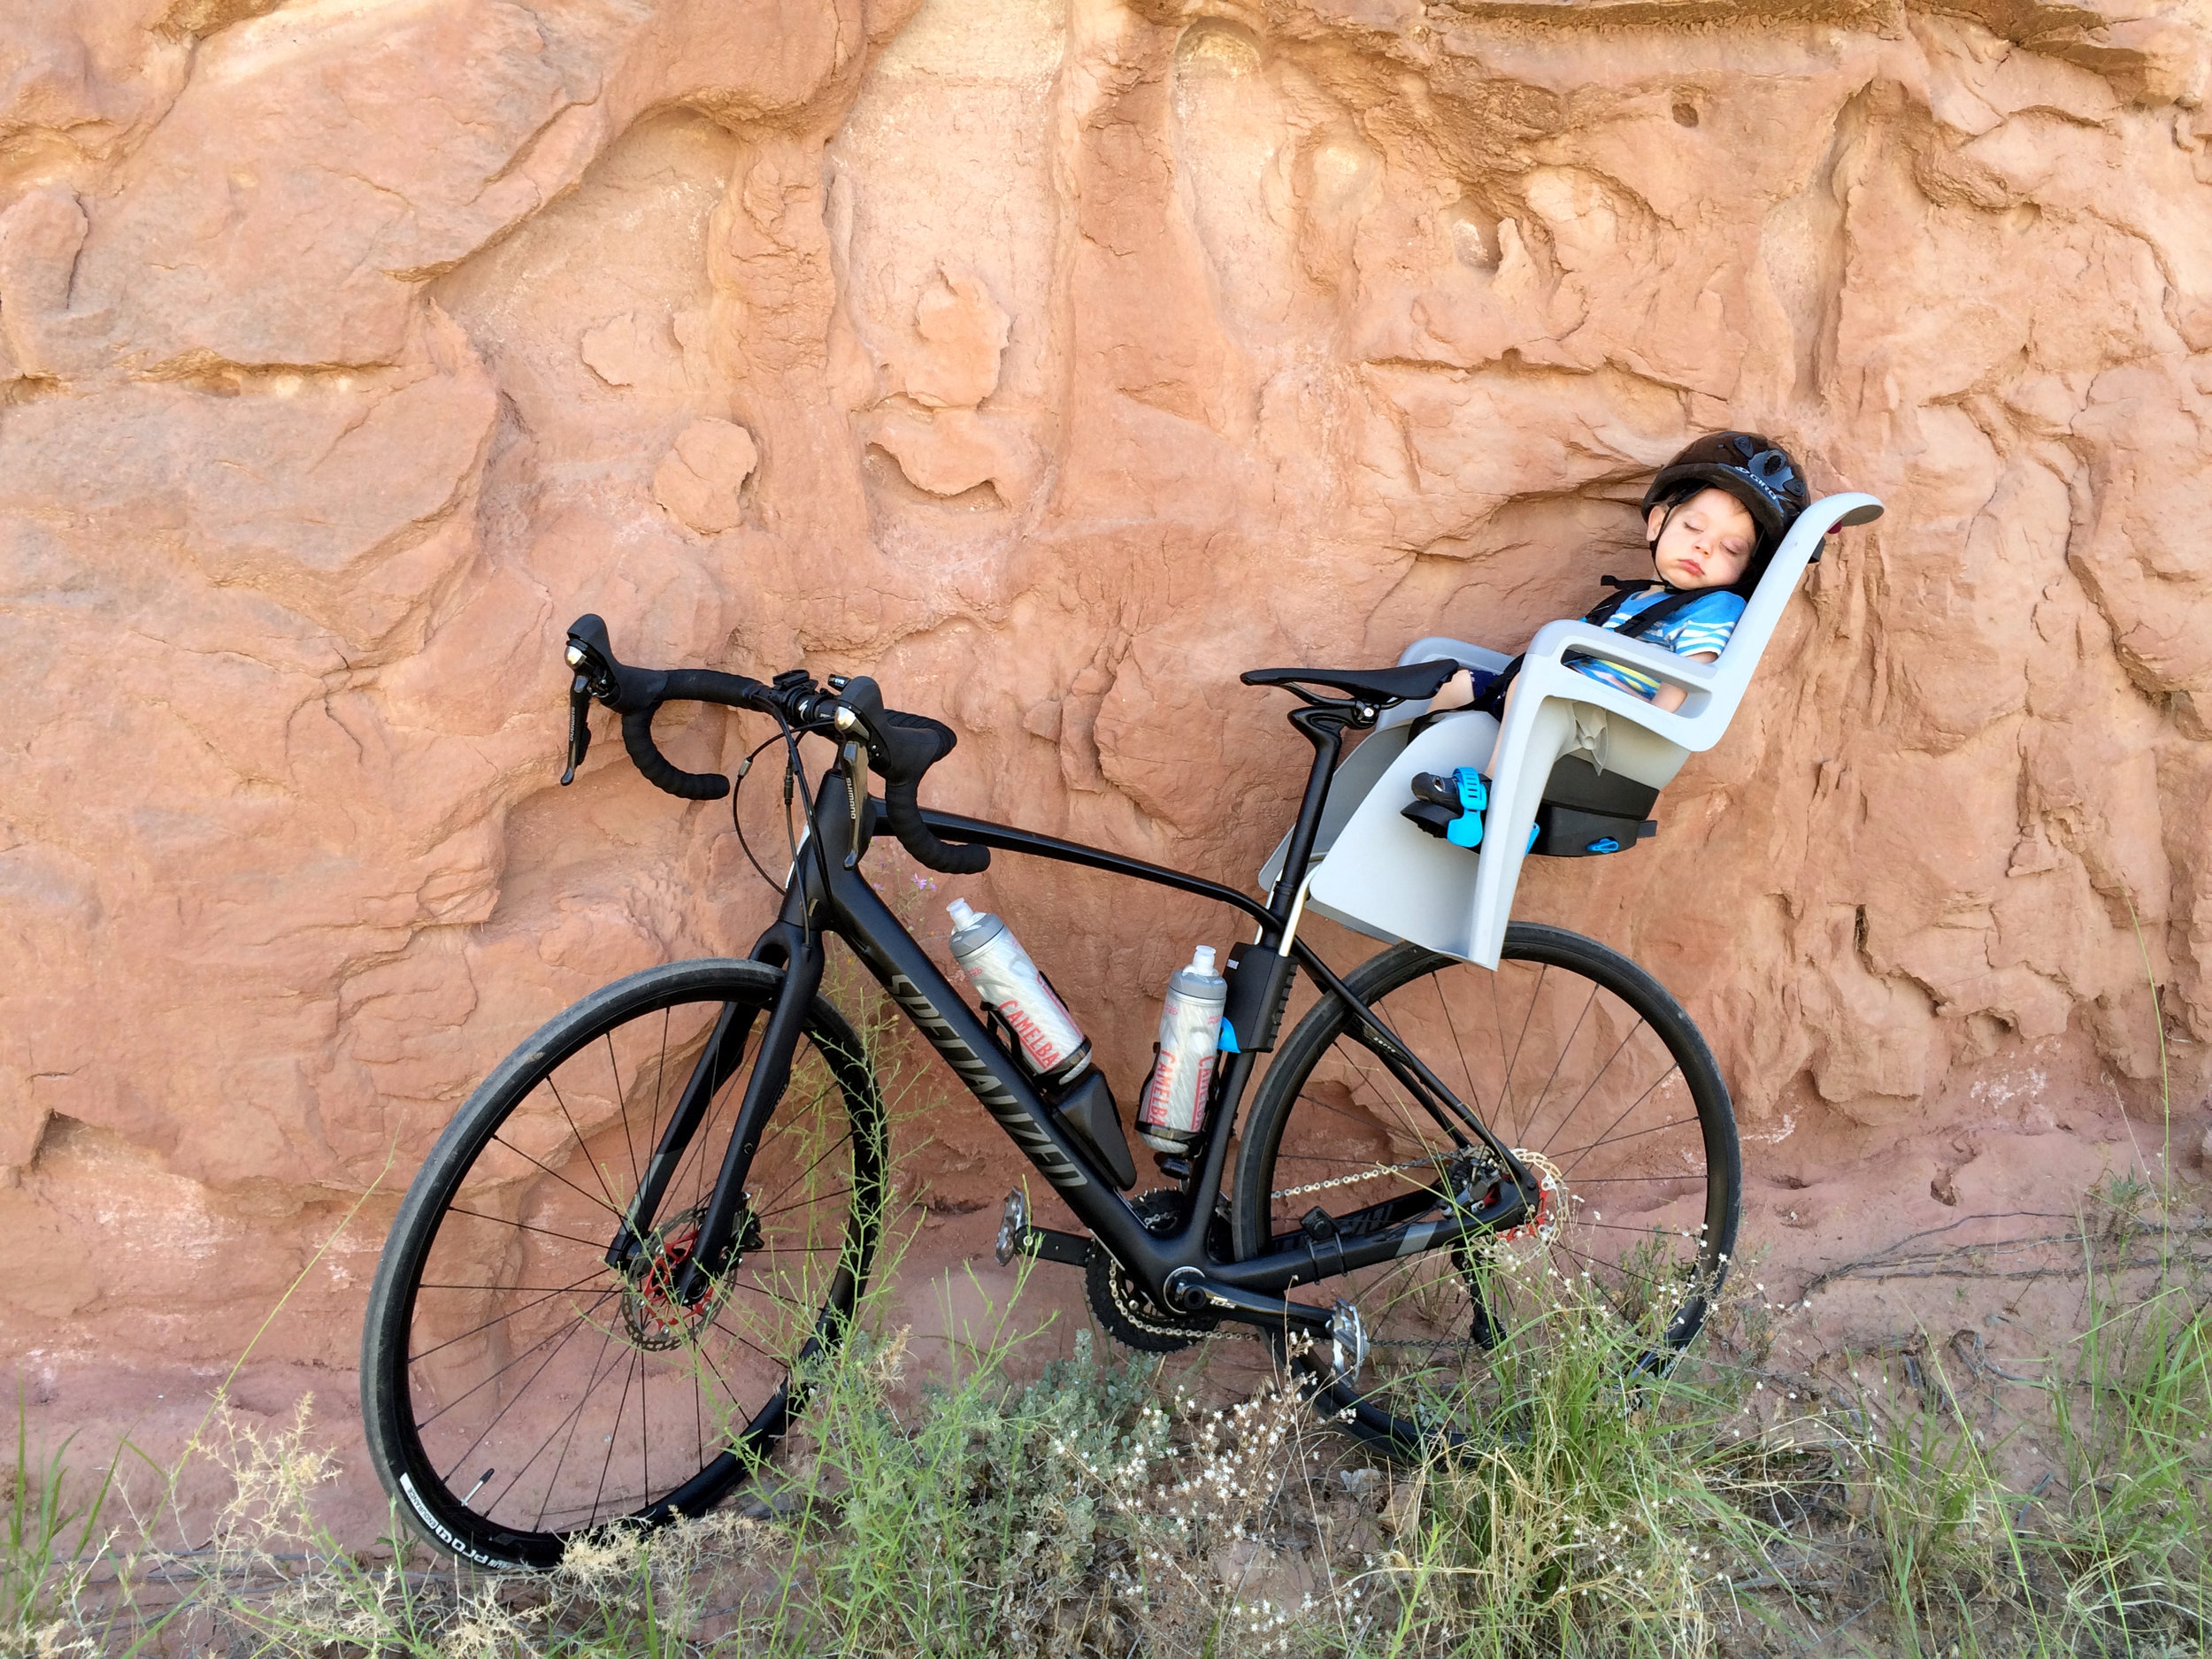 The Specialized Diverge: Approved by two year olds everywhere!